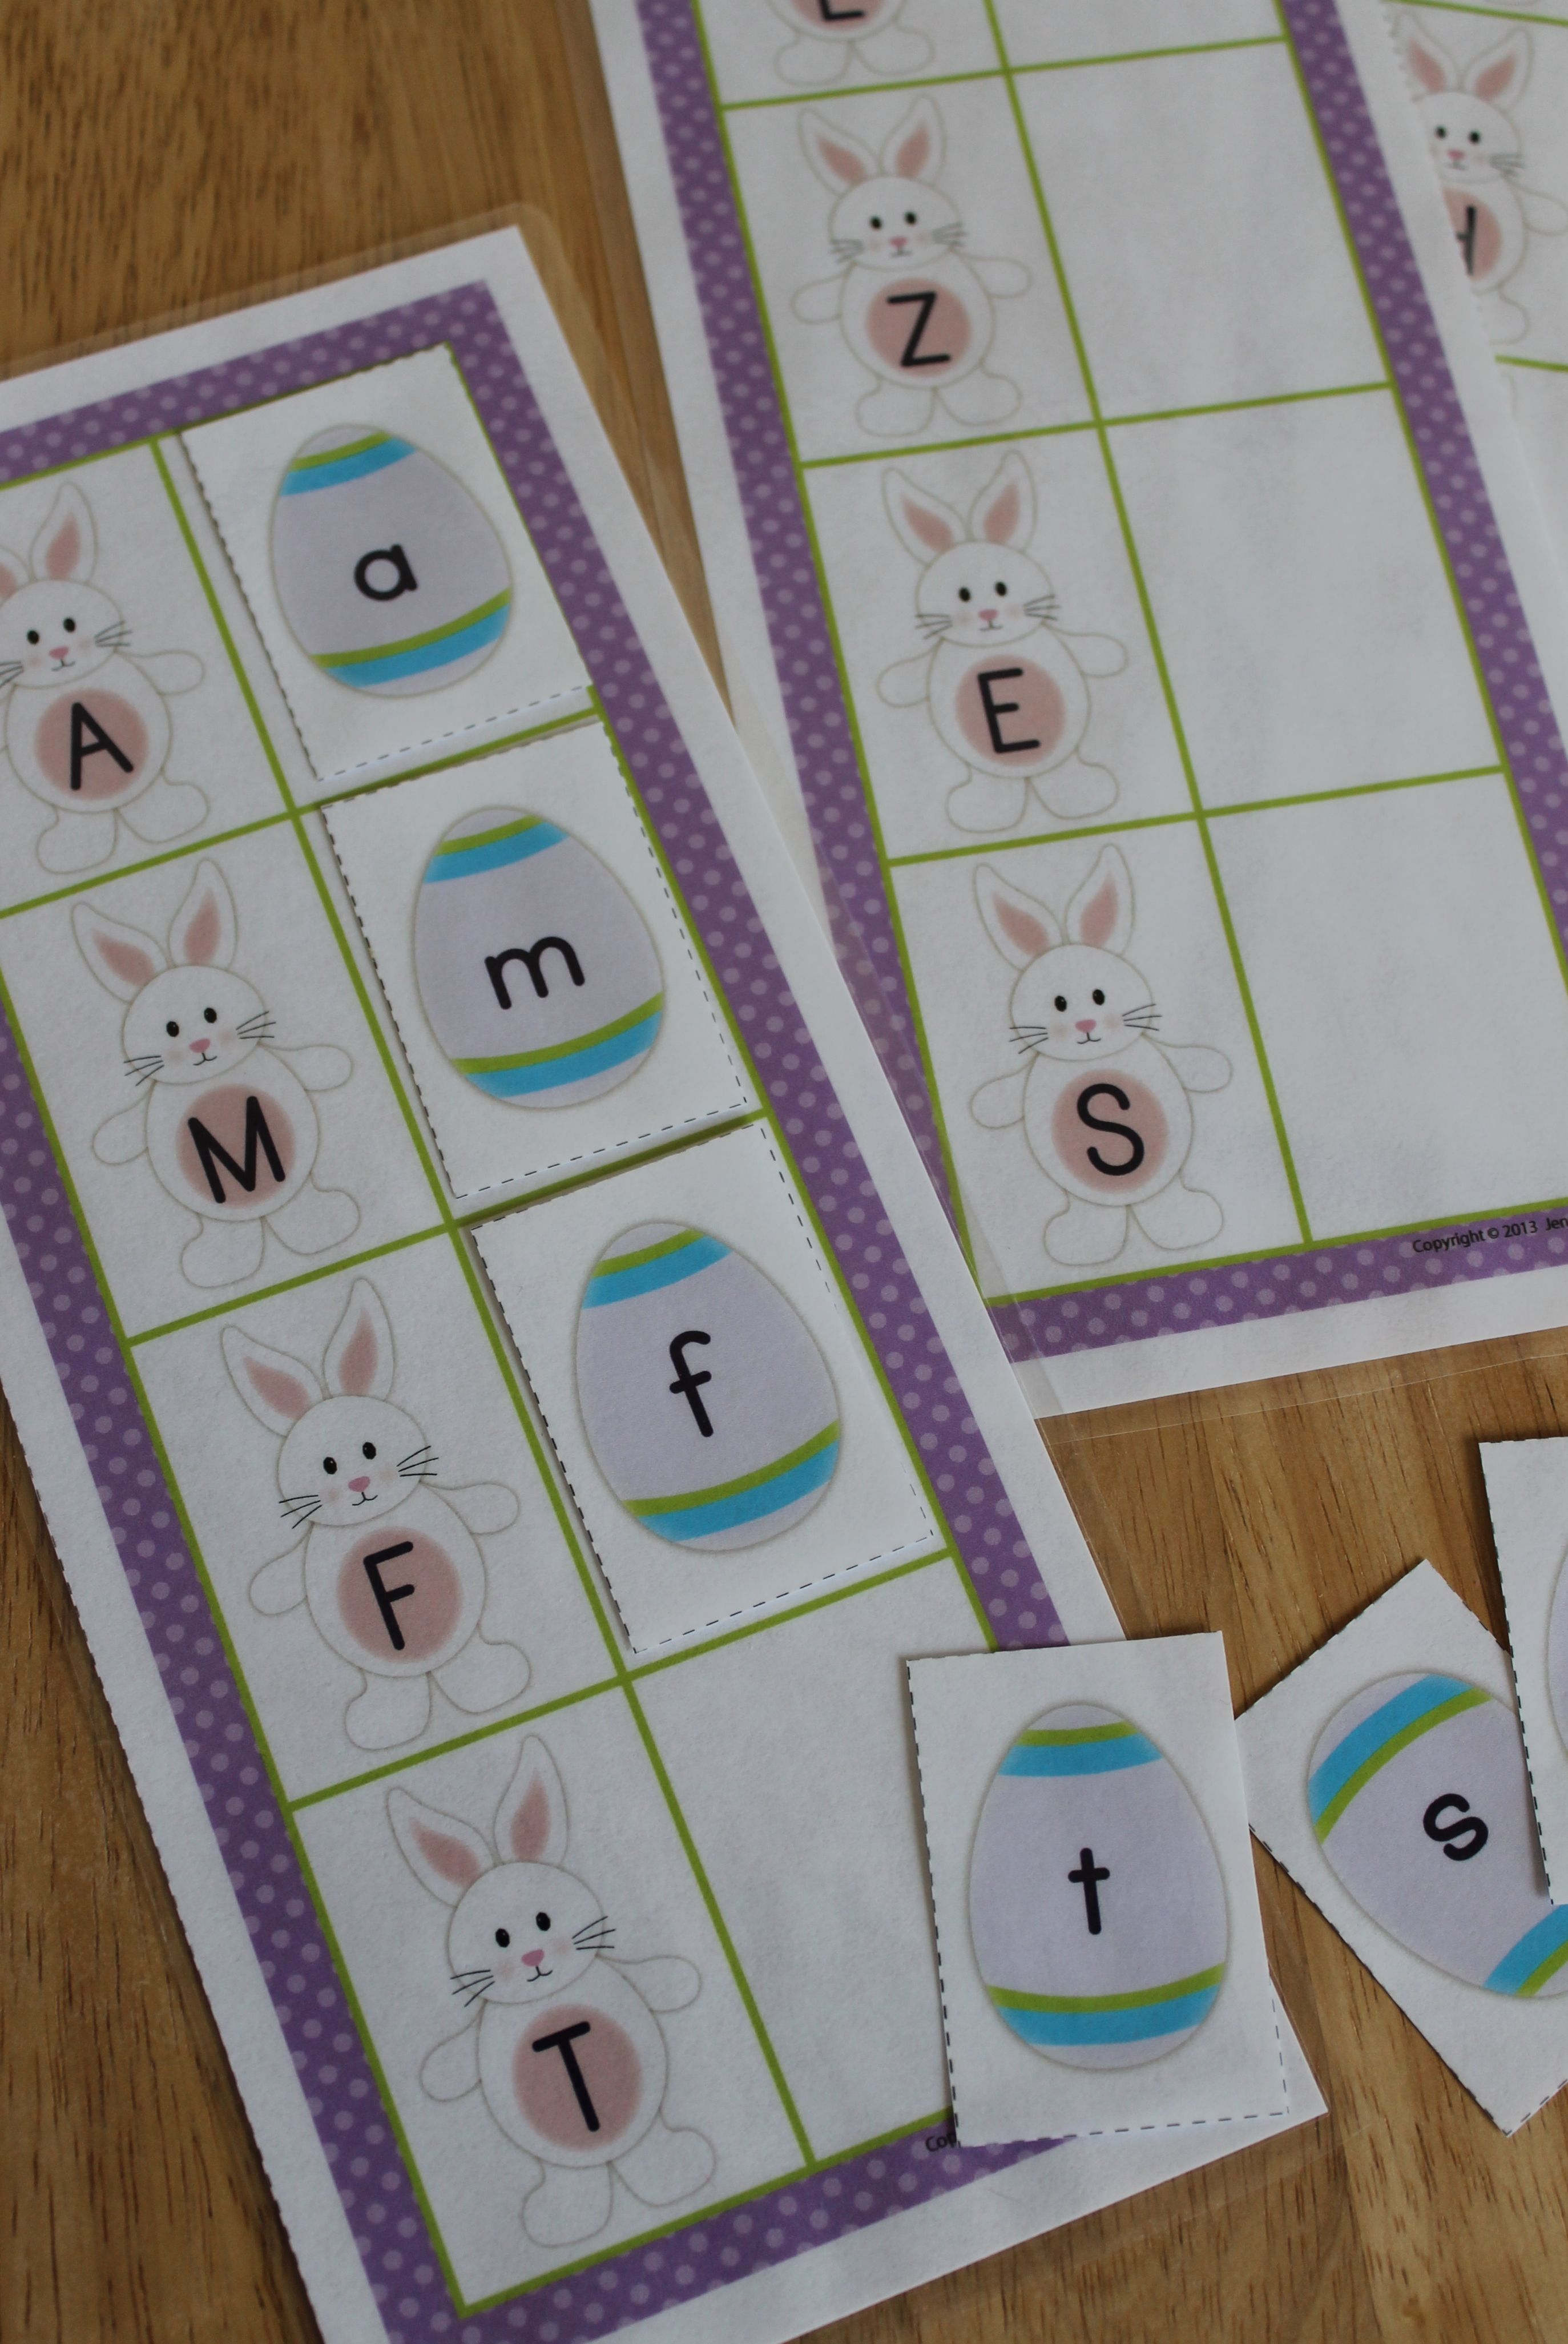 Easter Bunny And Egg Abc Matching Activity For Preschool Pre K Early Childhood Tot School